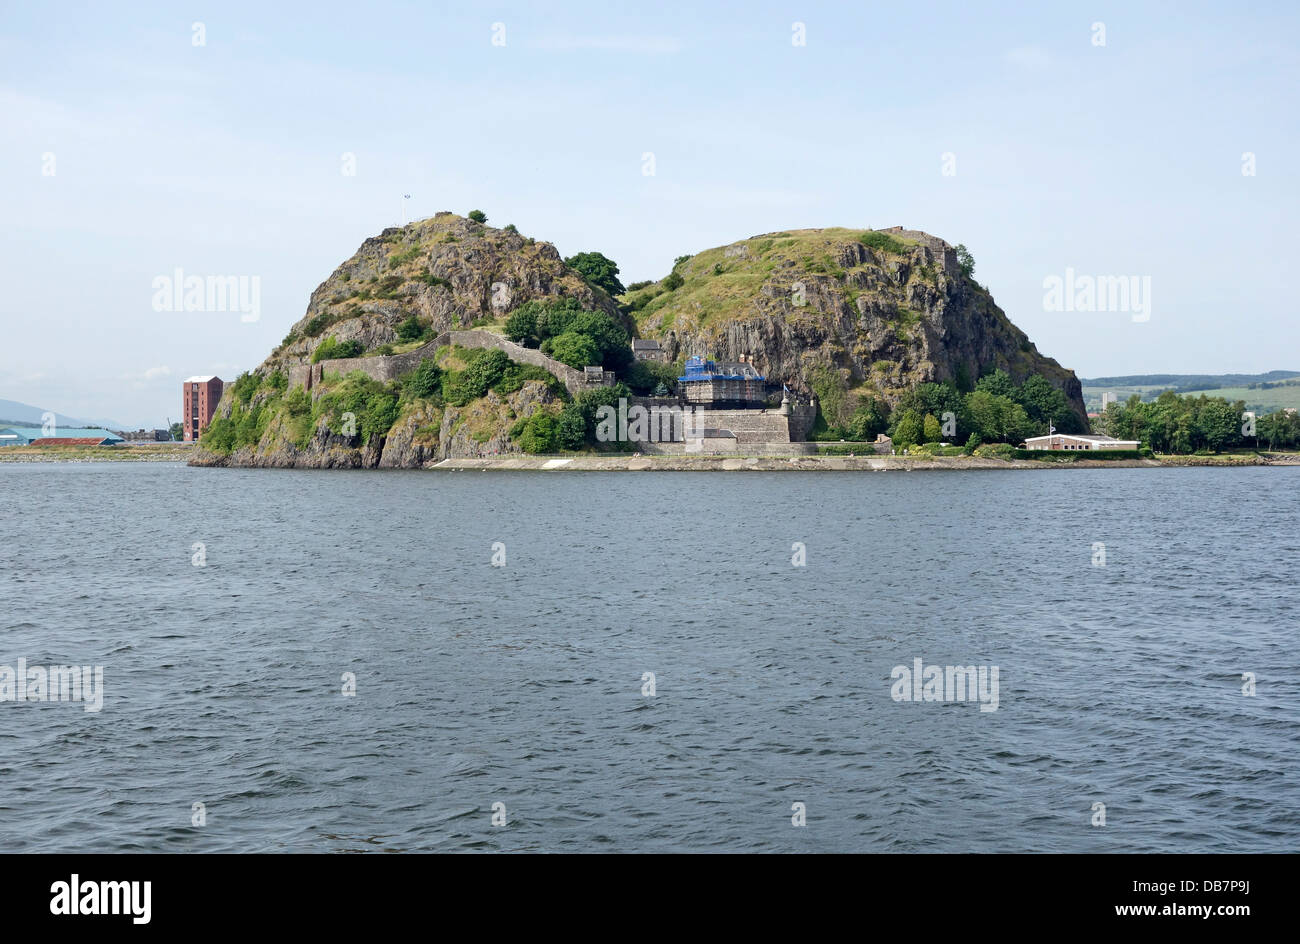 Dumbarton Rock with Dumbarton Castle on the River Clyde in West Dunbartonshire Scotland - Stock Image